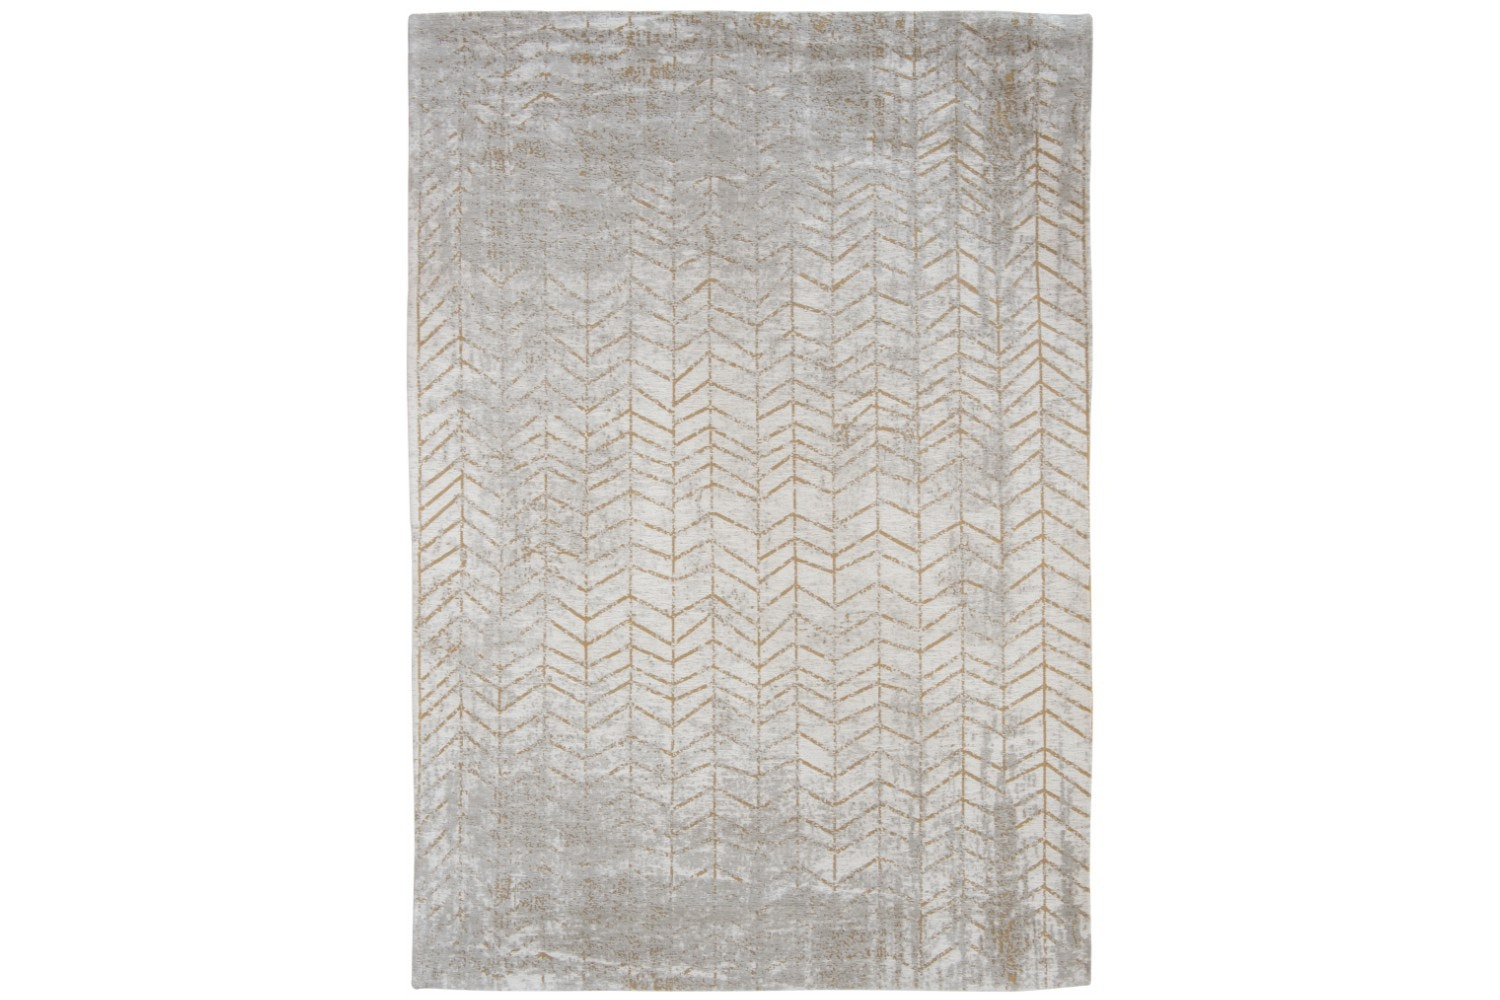 Central Yellow Rug   230 X 330 Cm